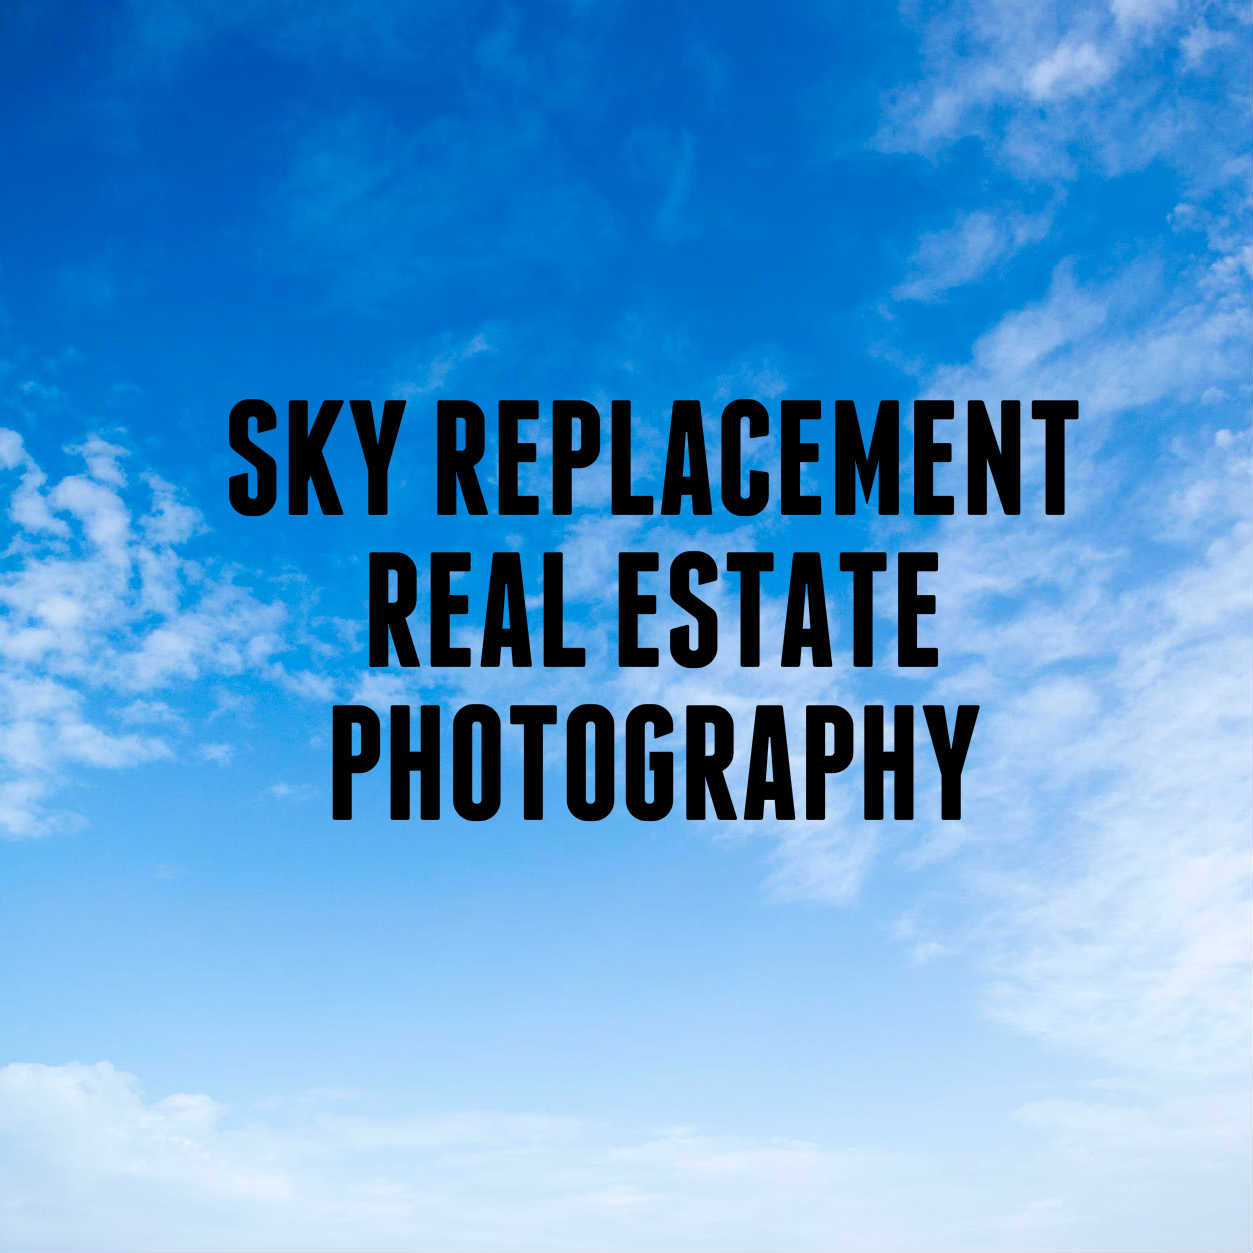 SKY REPLACEMENT REAL ESTATE PHOTOGRAPHY